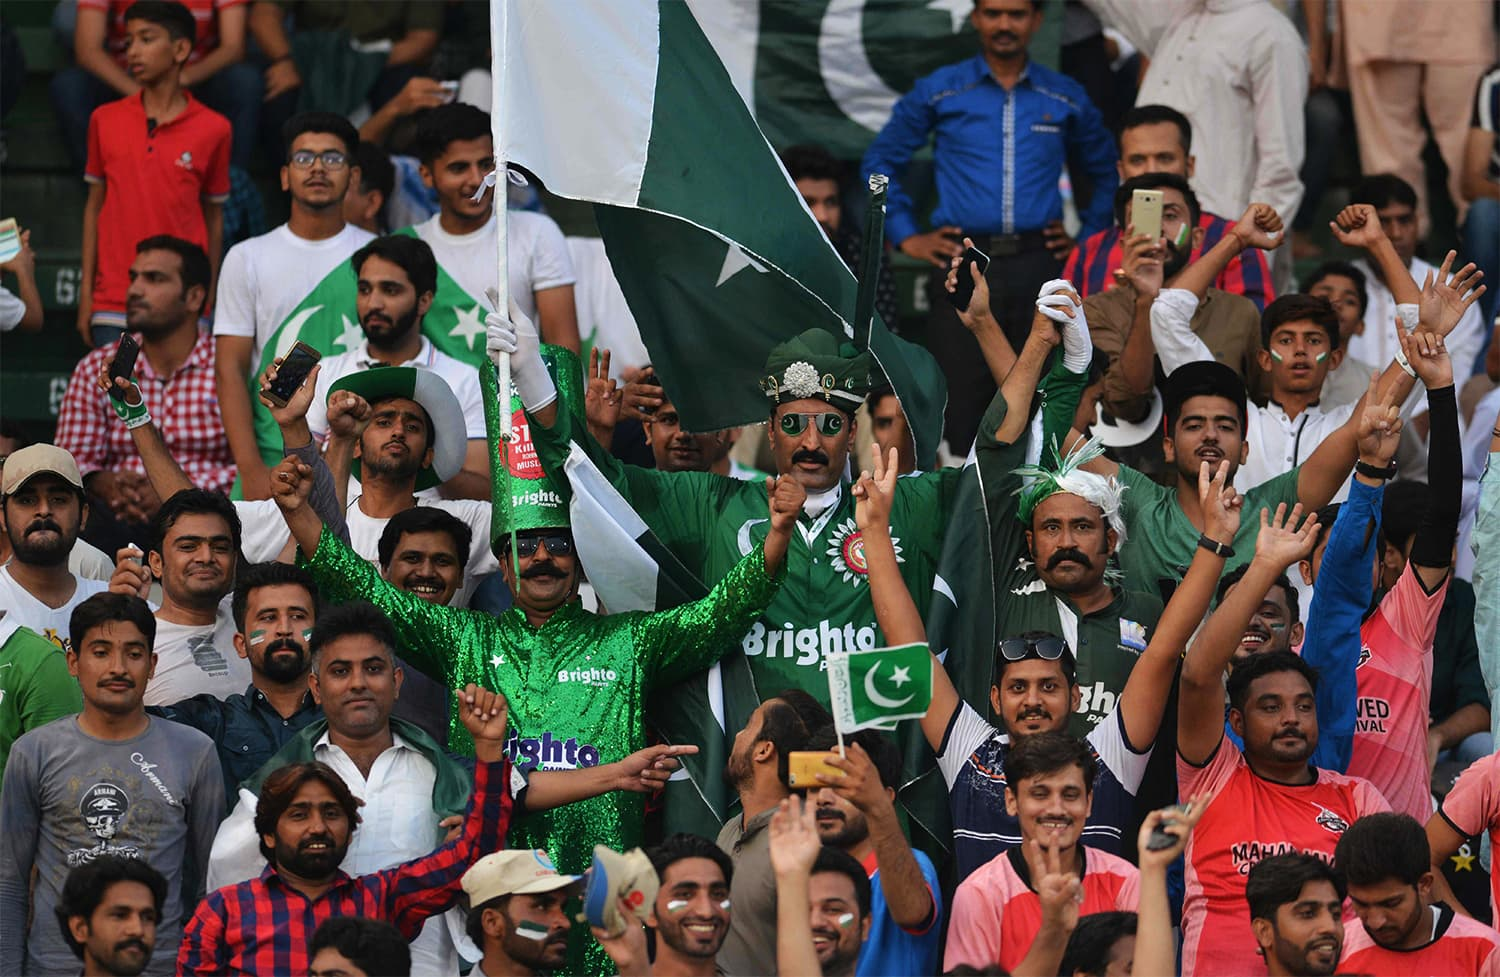 Spectators cheer at the start of the first T20I between the World XI and Pakistan at Gaddafi Stadium. ─ AFP